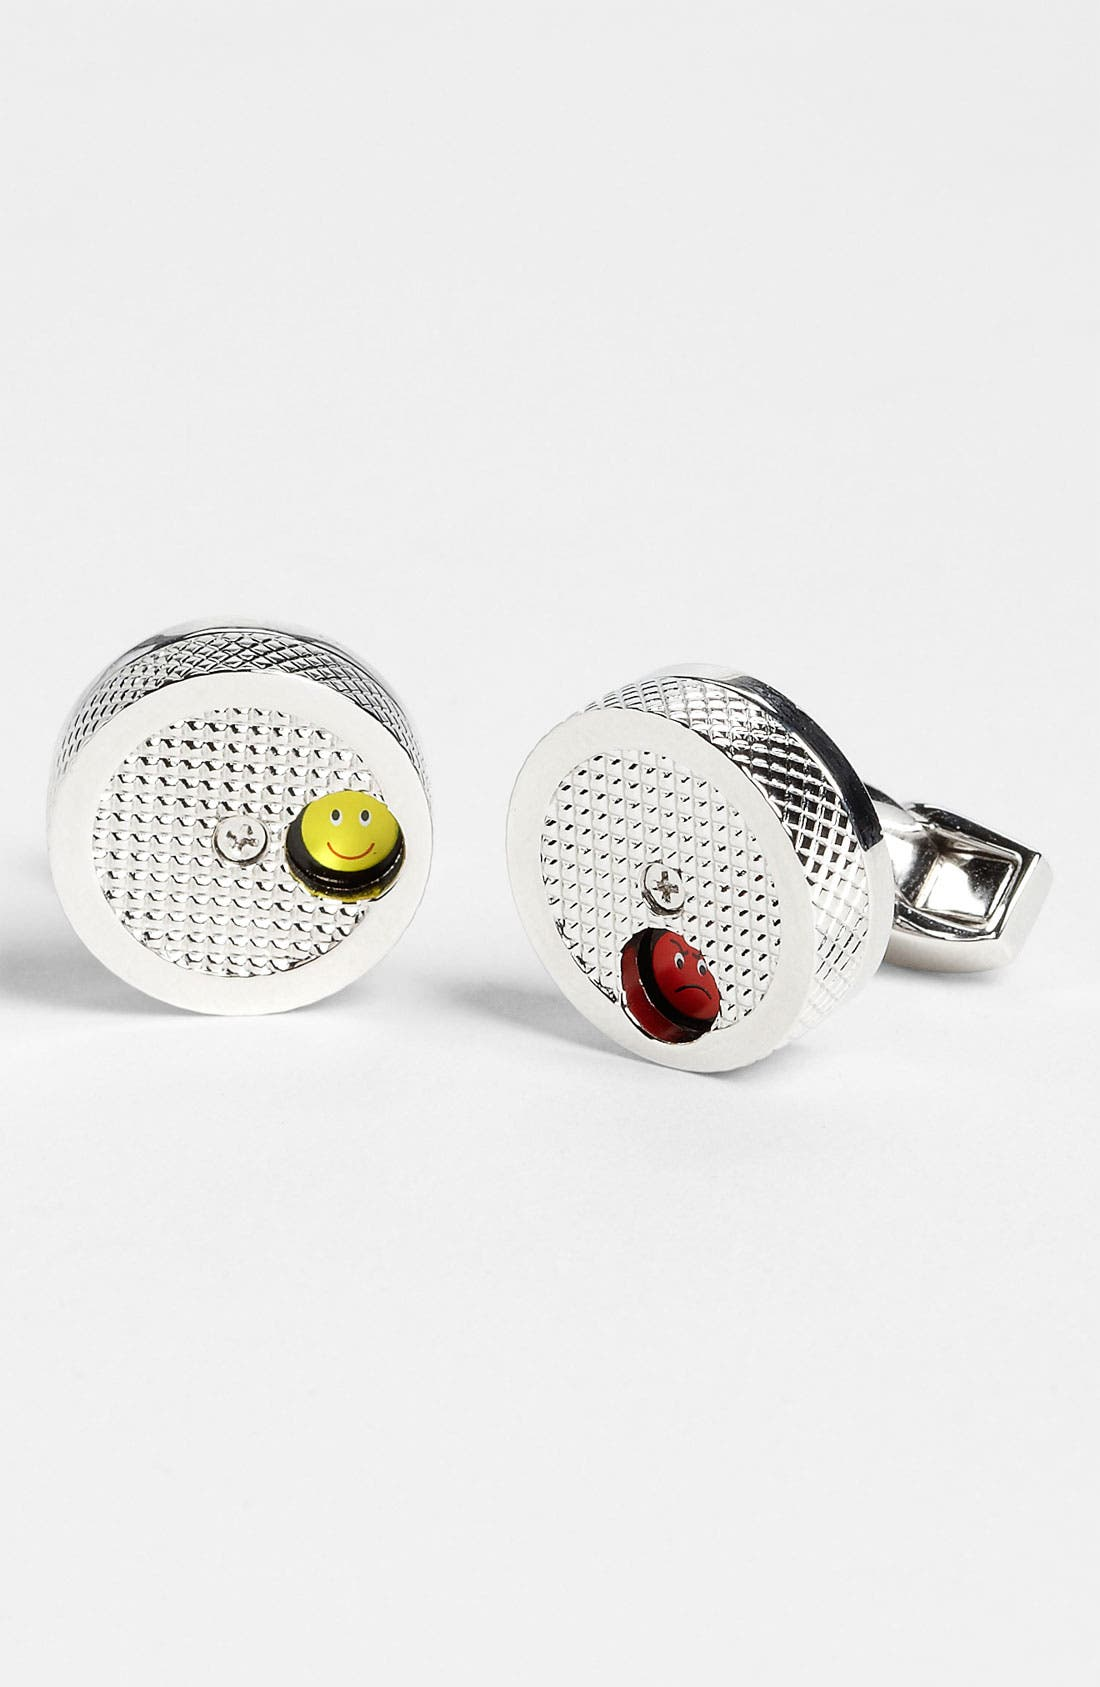 Alternate Image 1 Selected - Tateossian 'Mood' Cuff Links